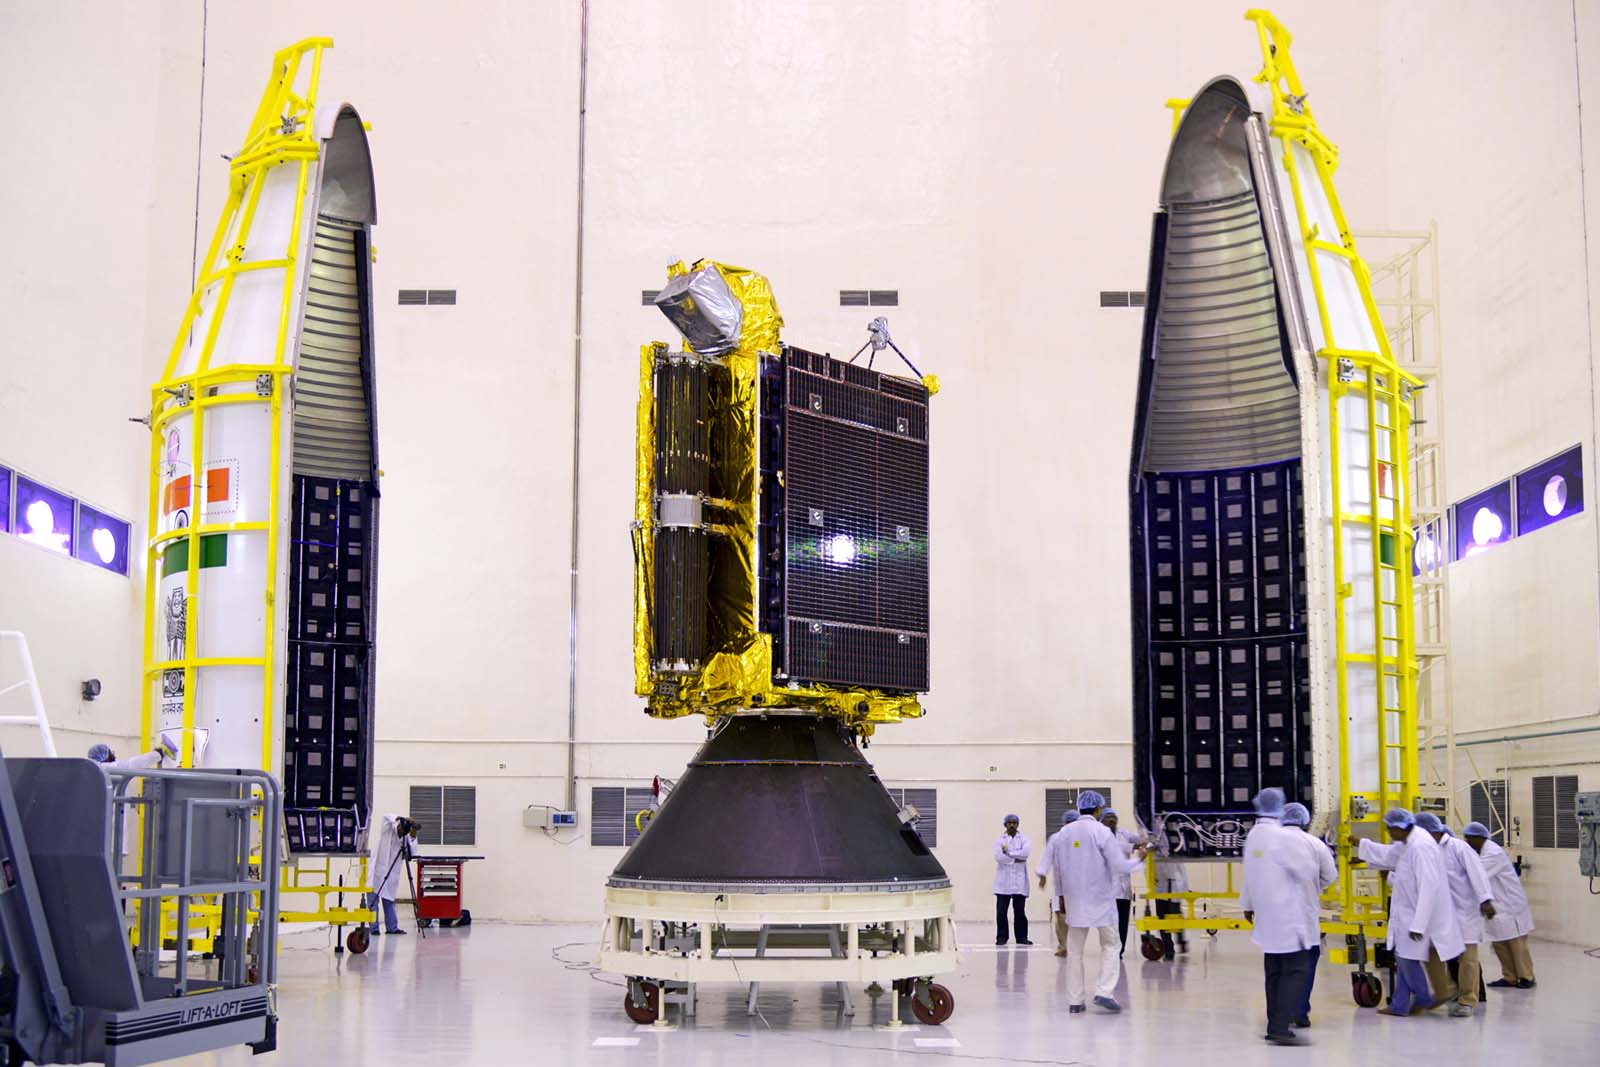 India's GSAT 6 communications satellite is pictured before encapsulation inside the GSLV's payload fairing. Credit: ISRO